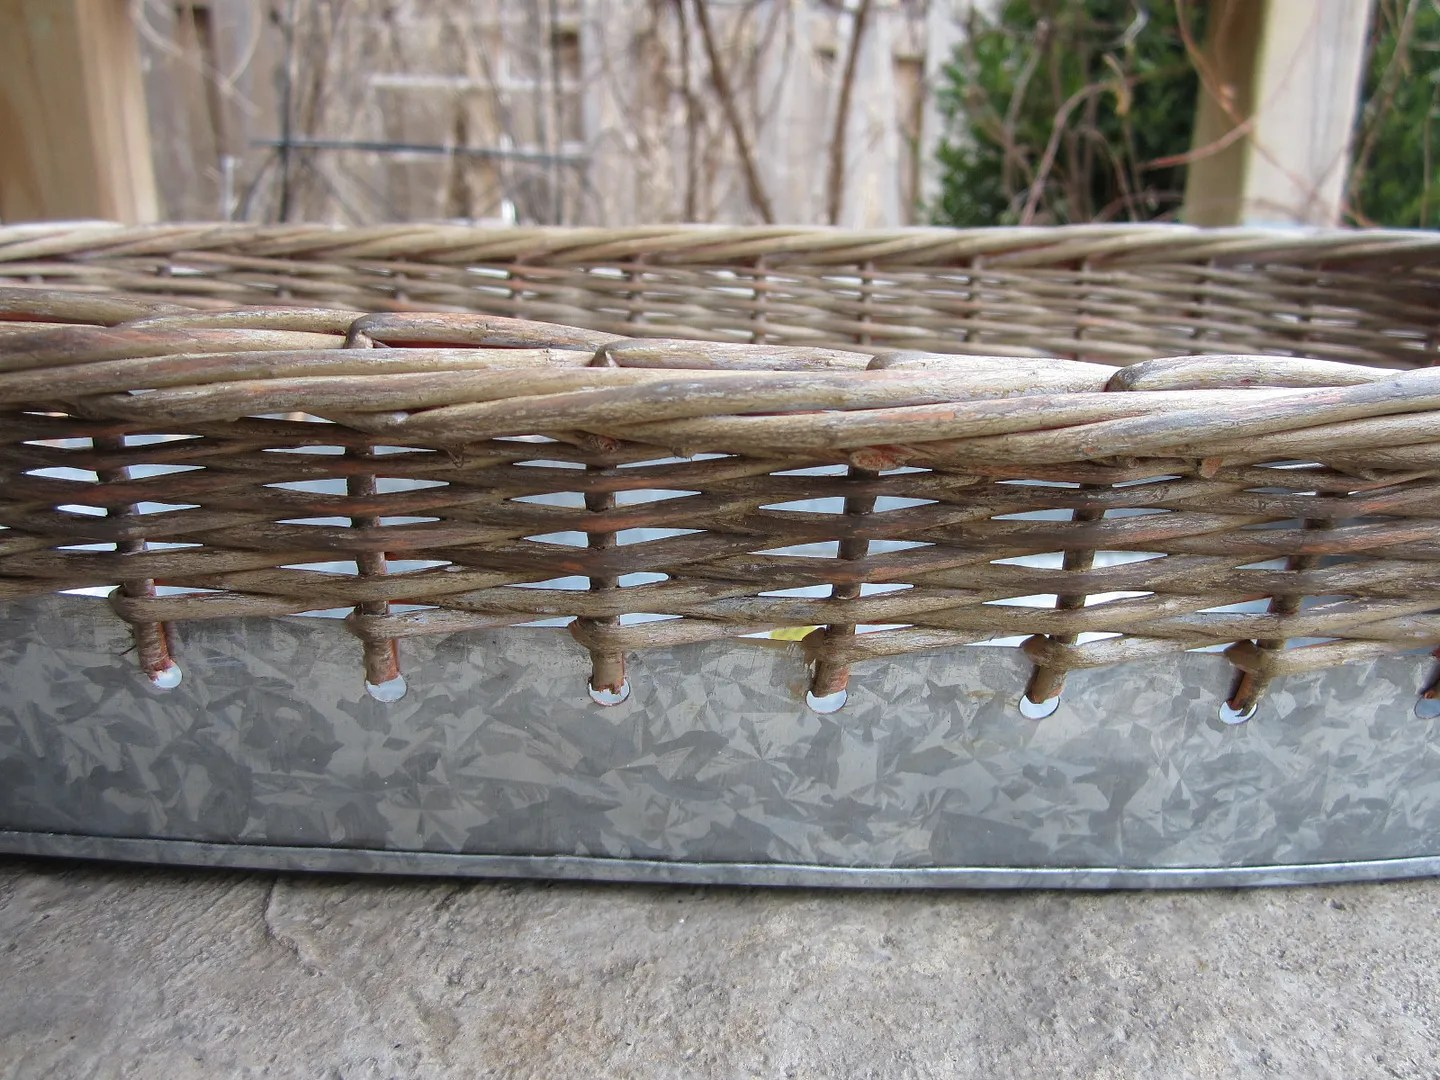 How to Age a Wicker Basket / HomeStagingBloomingtonIL